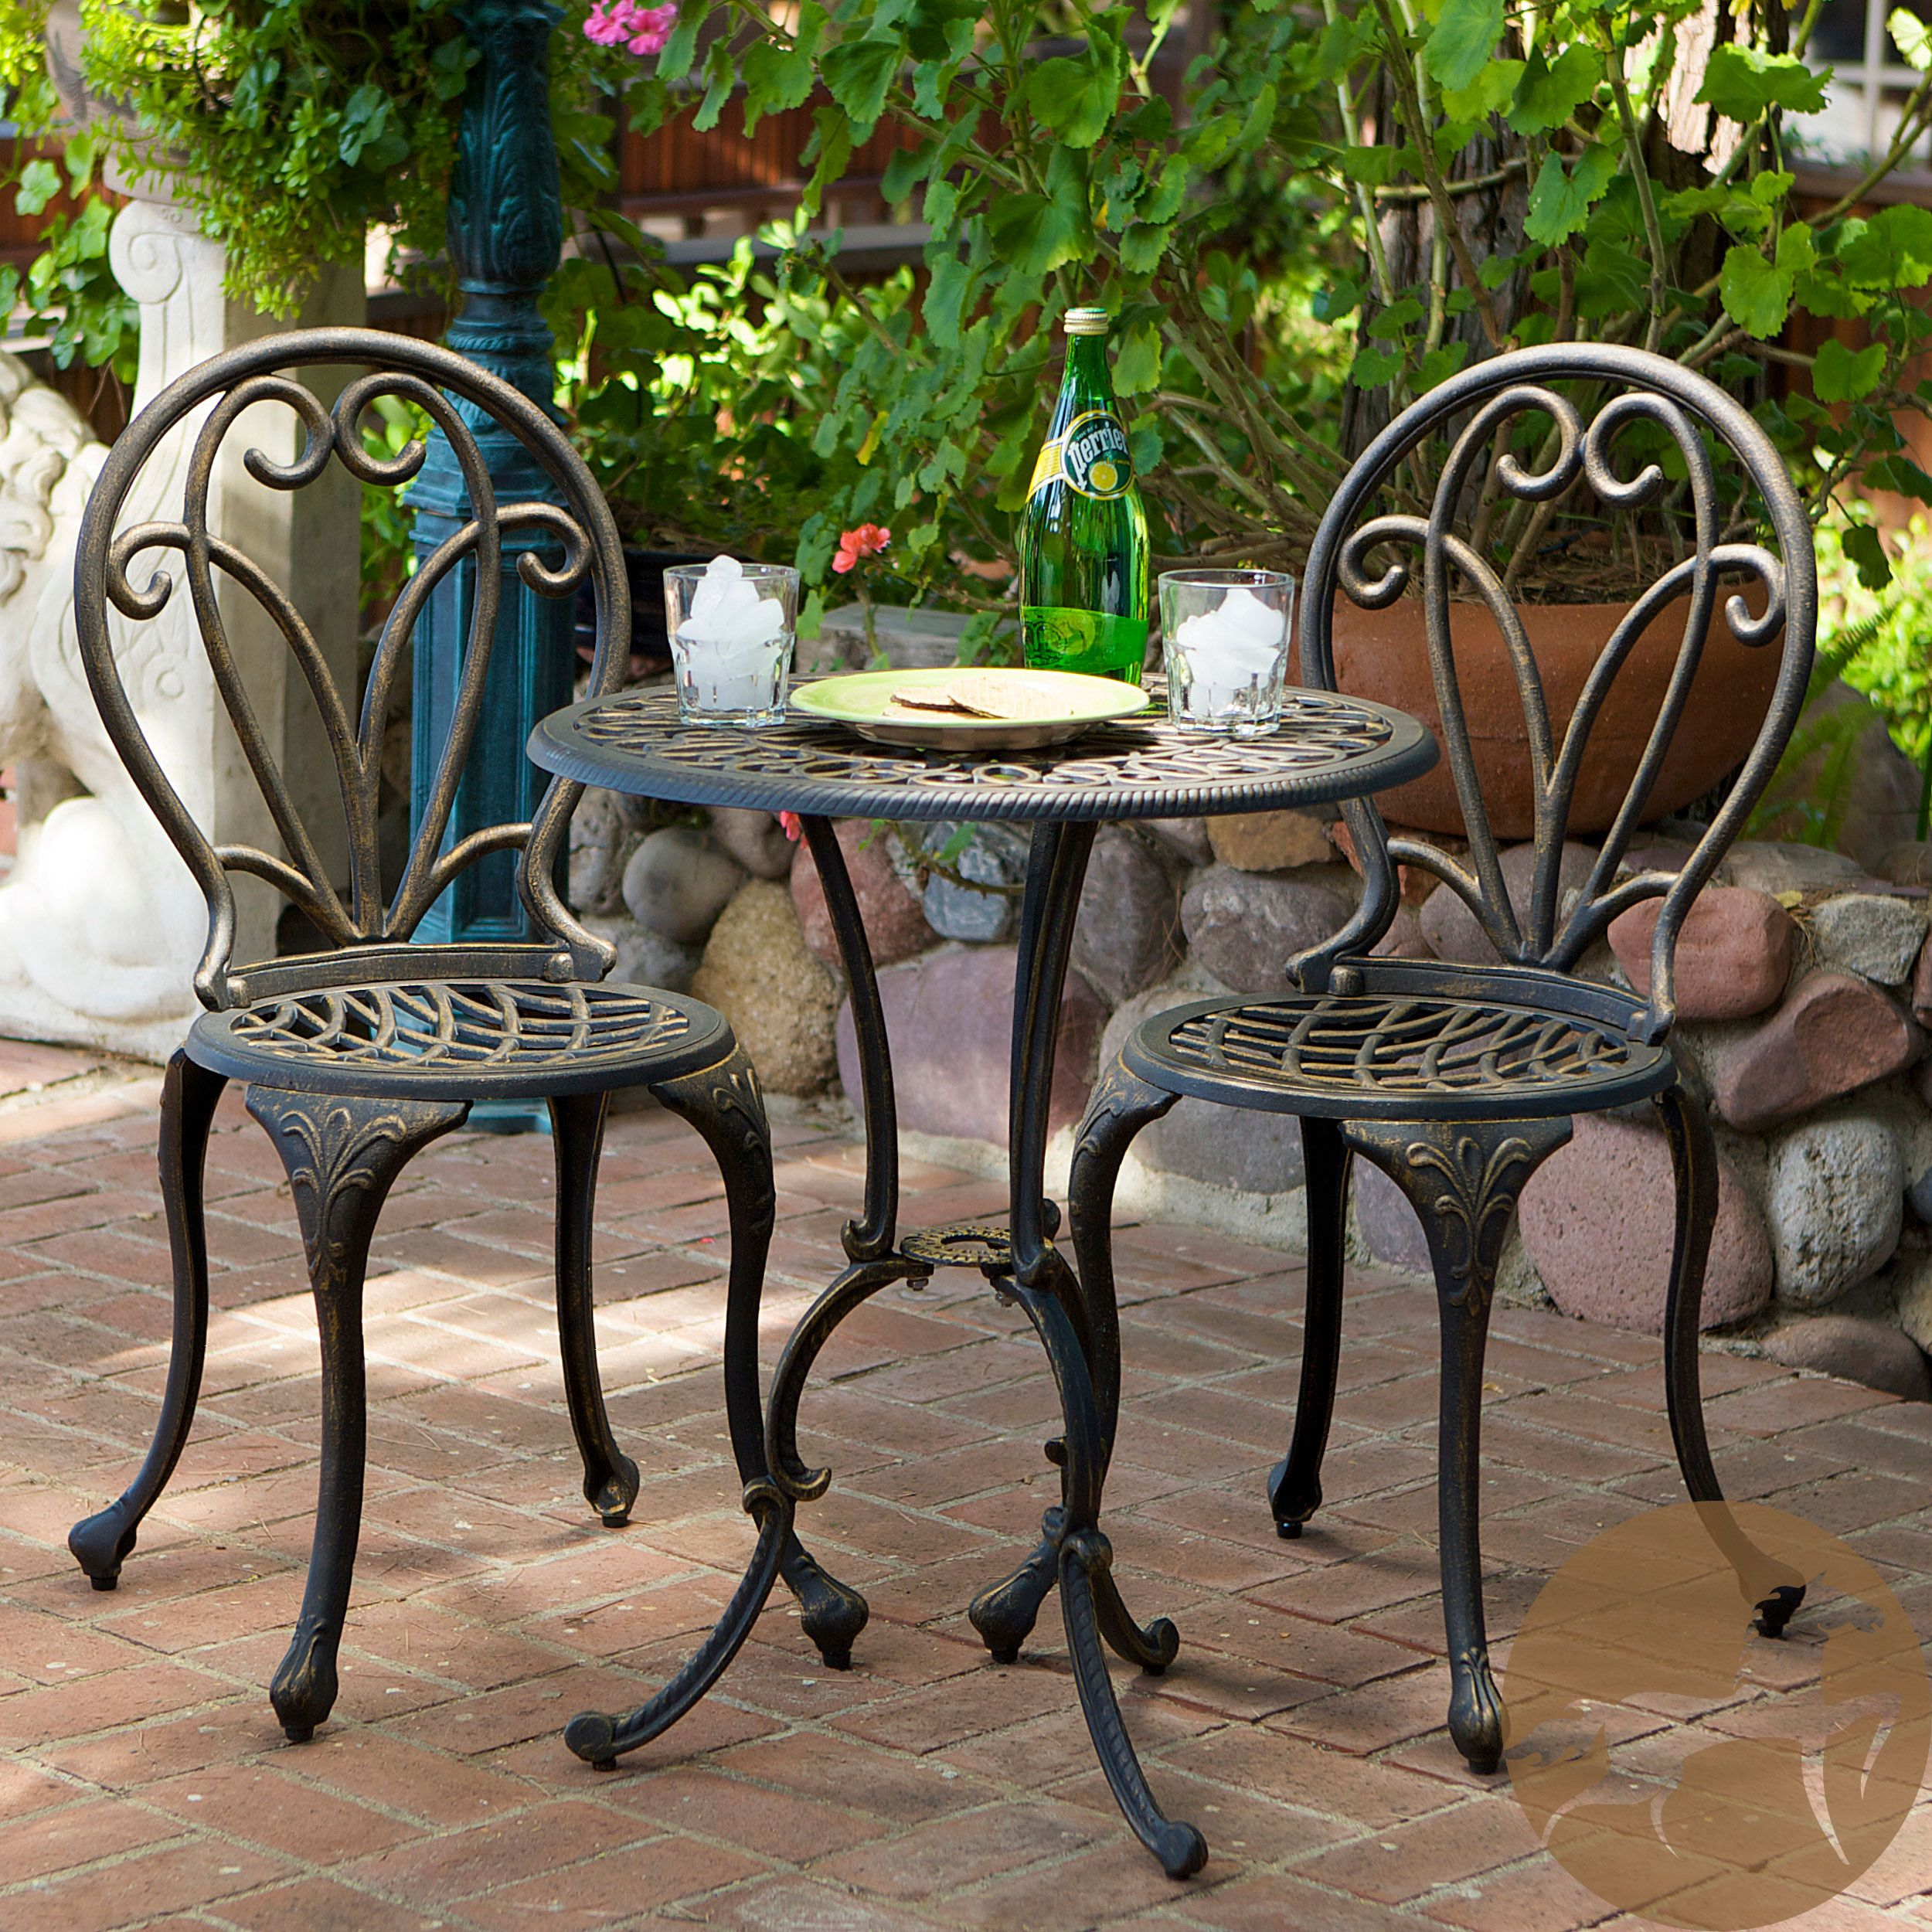 This French Style Outdoor Bistro Set Will Lend Classy Style To Your Patio The Set Is